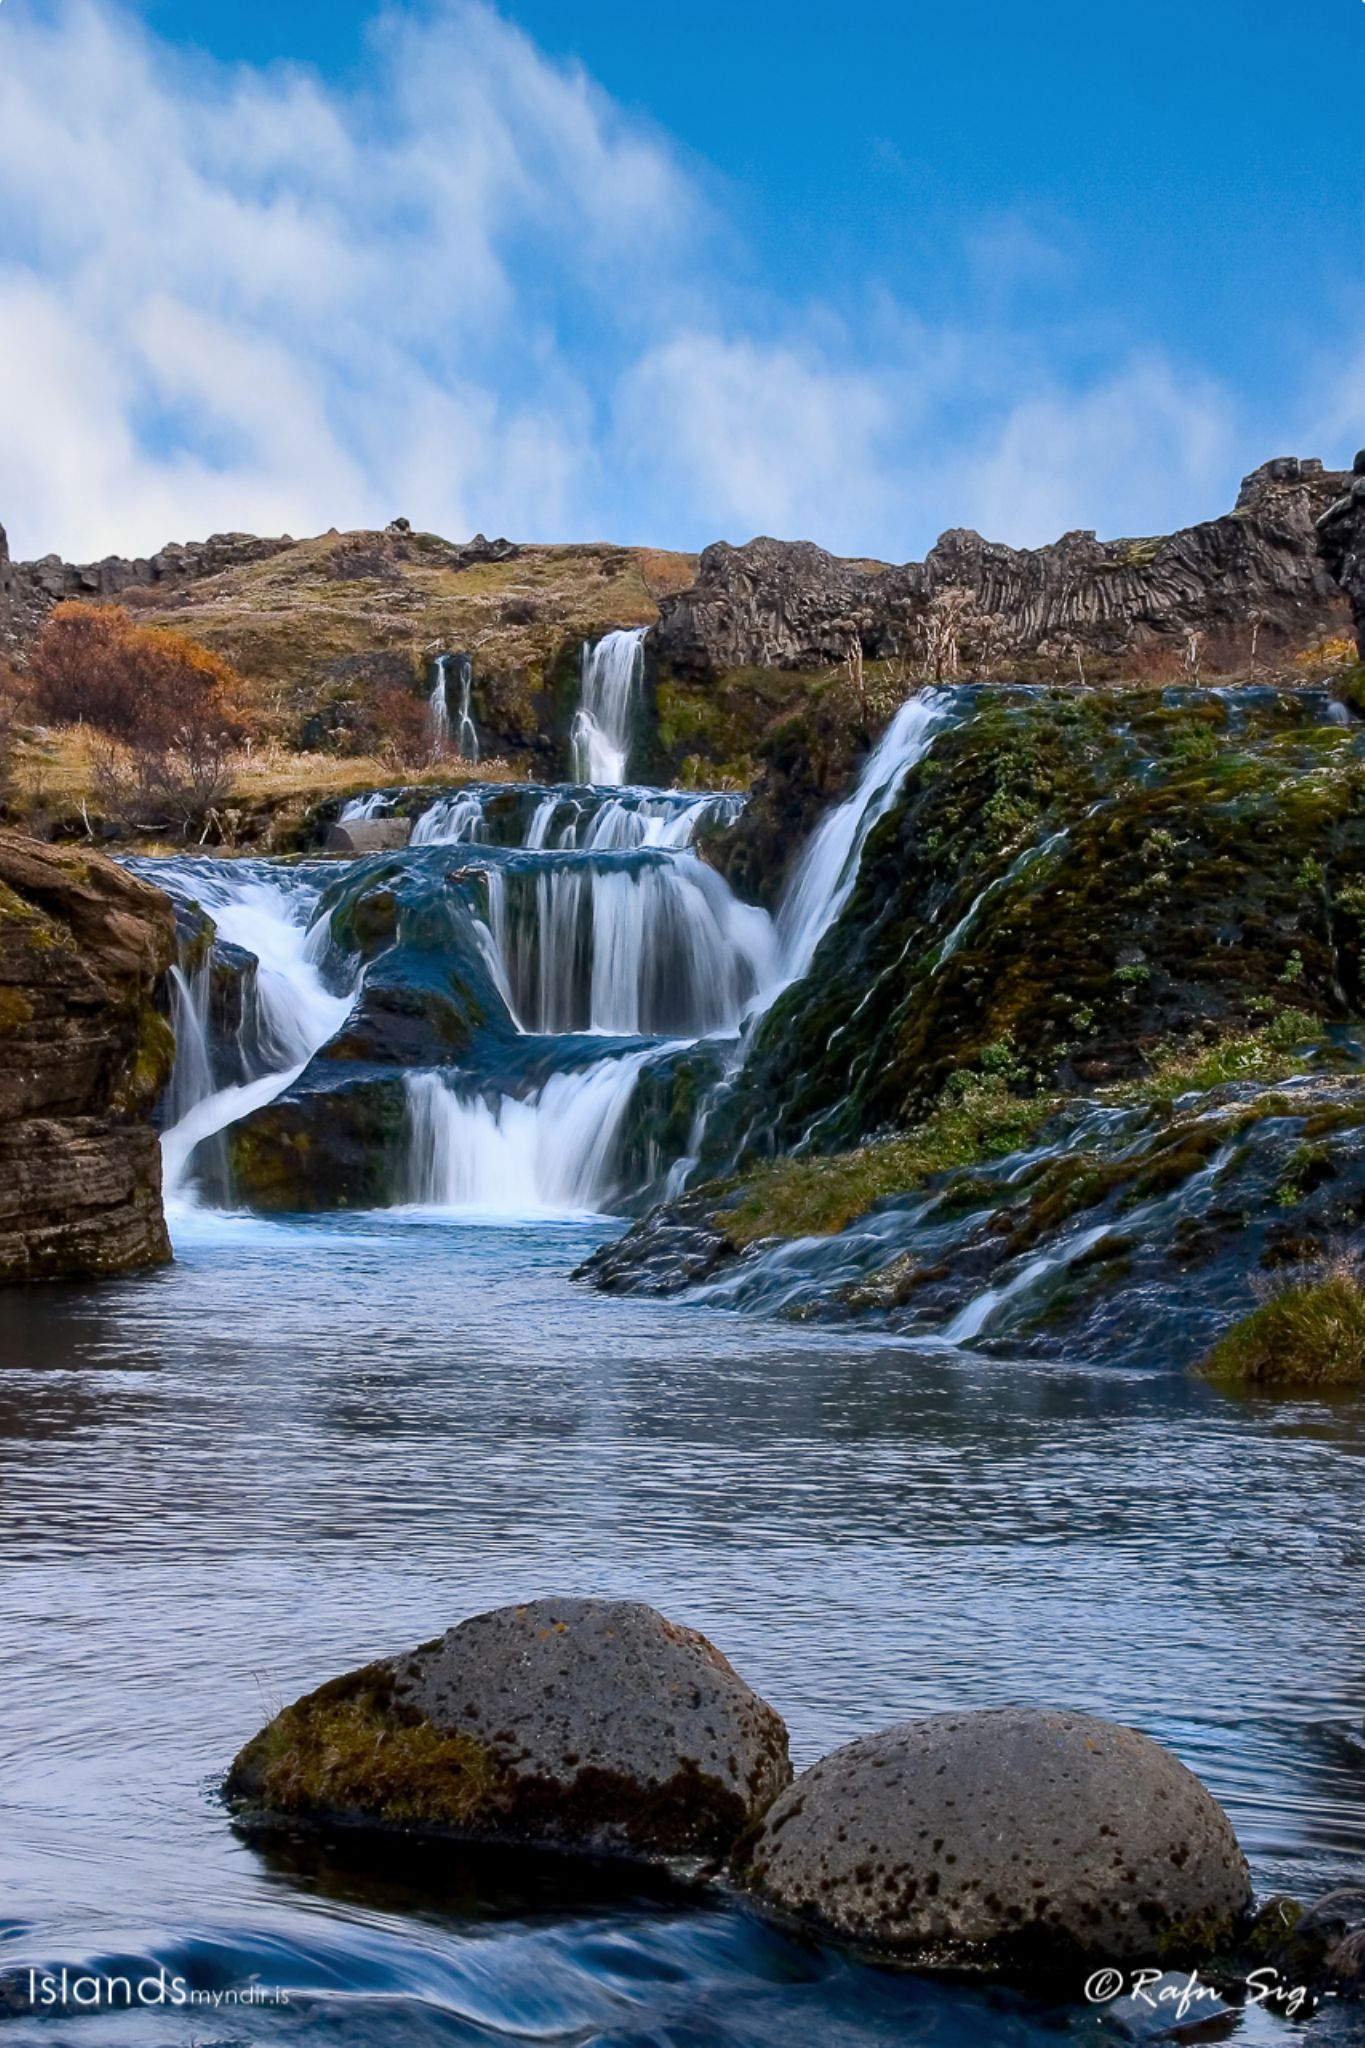 There is a small oasis up in the highlands in #Iceland by Rafn Sig,-  @ Discover Wild Iceland.com